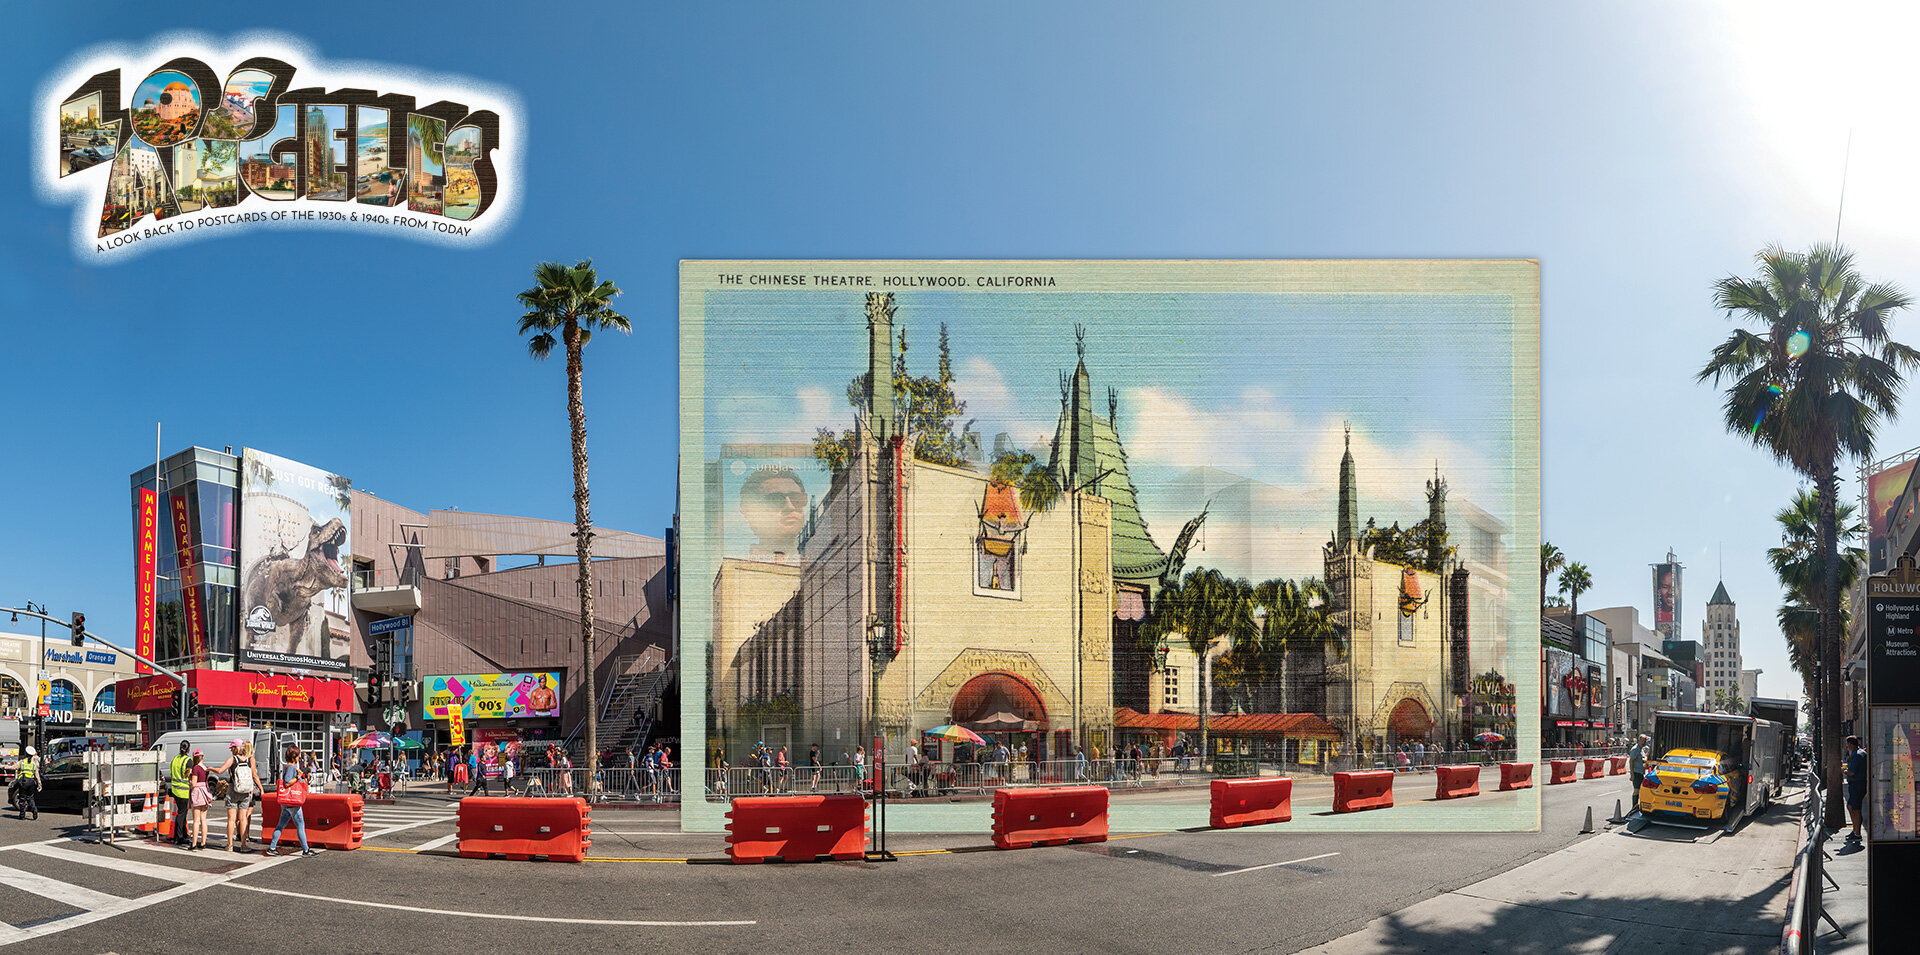 Featured Artwork: The Chinese Theatre, 1937 and Today - See More